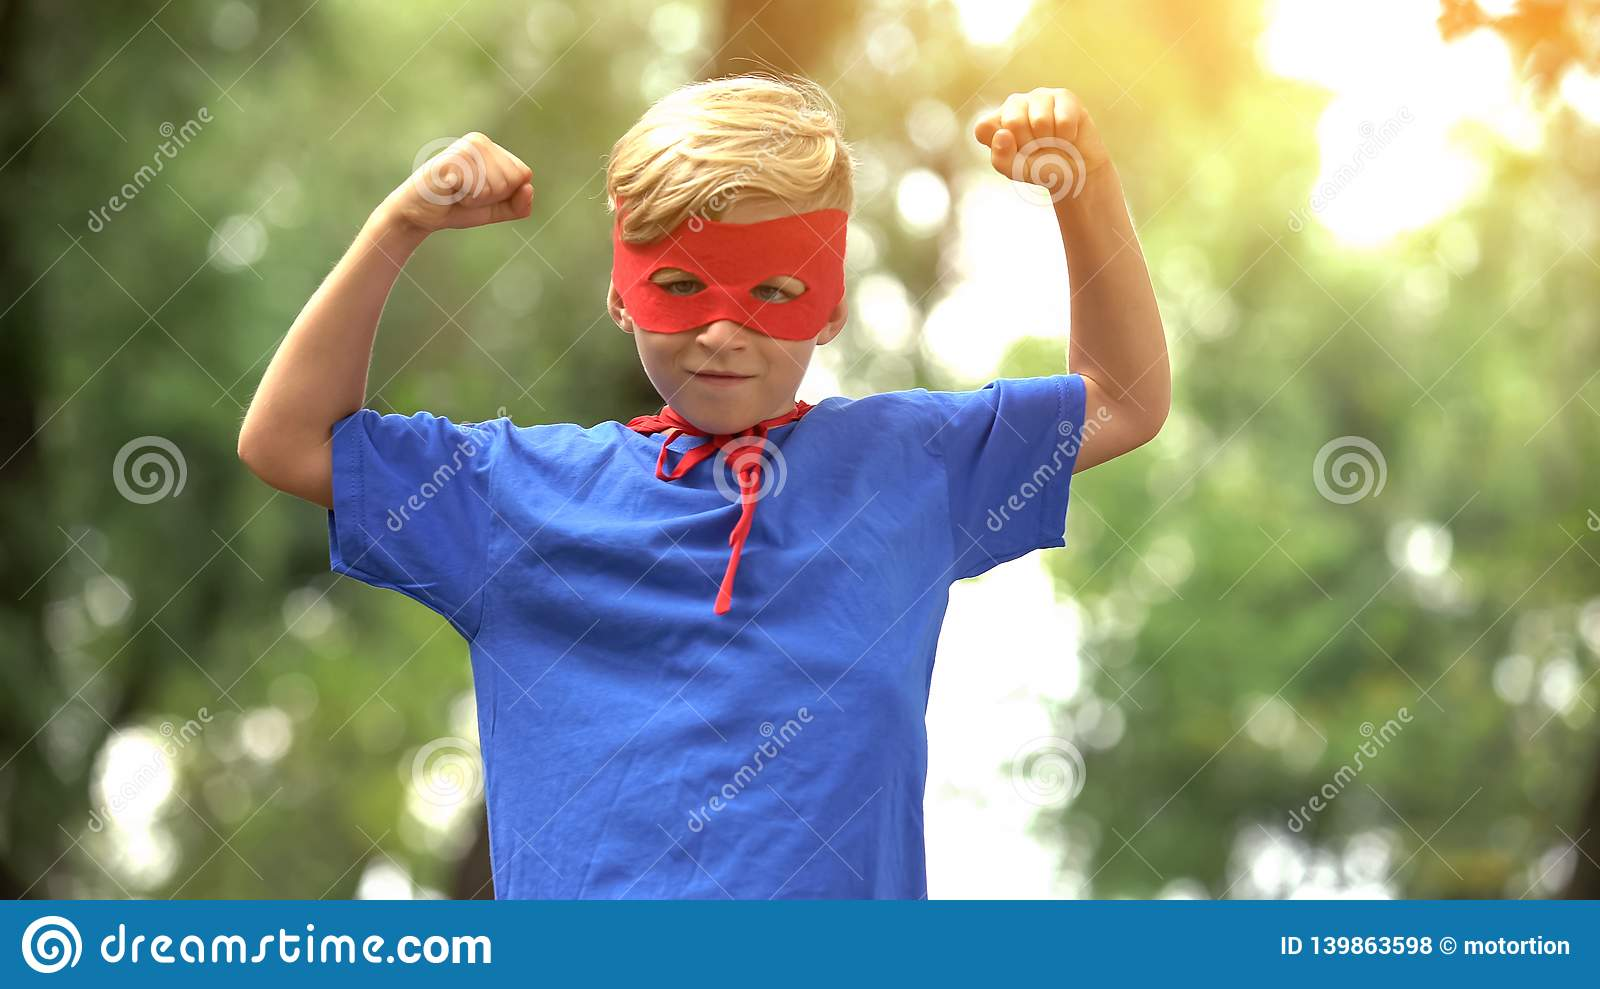 Superhero boy showing muscles, game as psychotherapy for child confidence